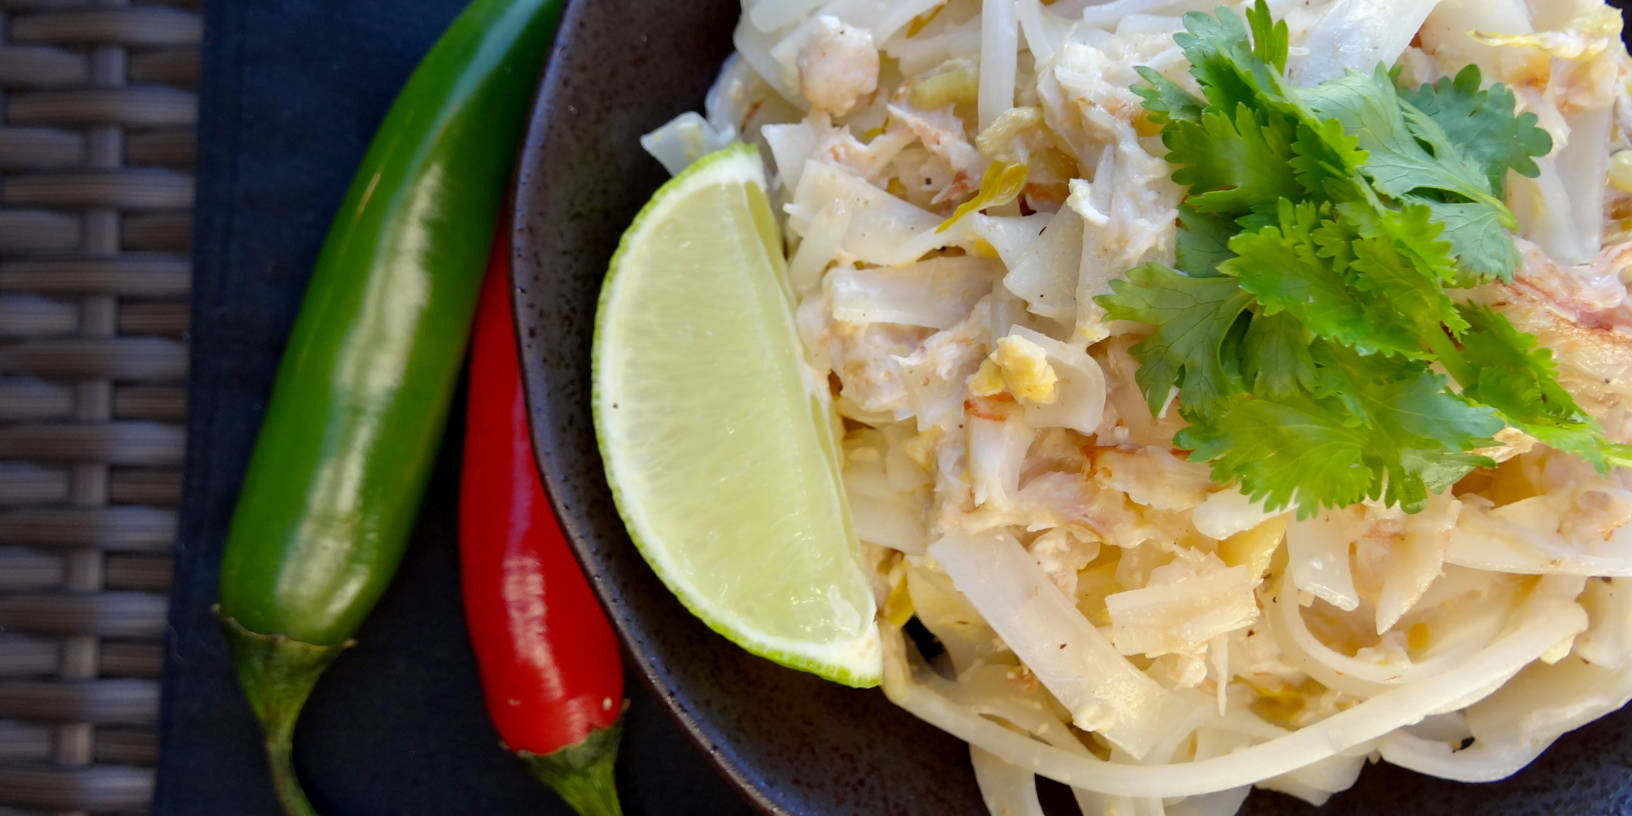 Thai Fried Noodles with crab